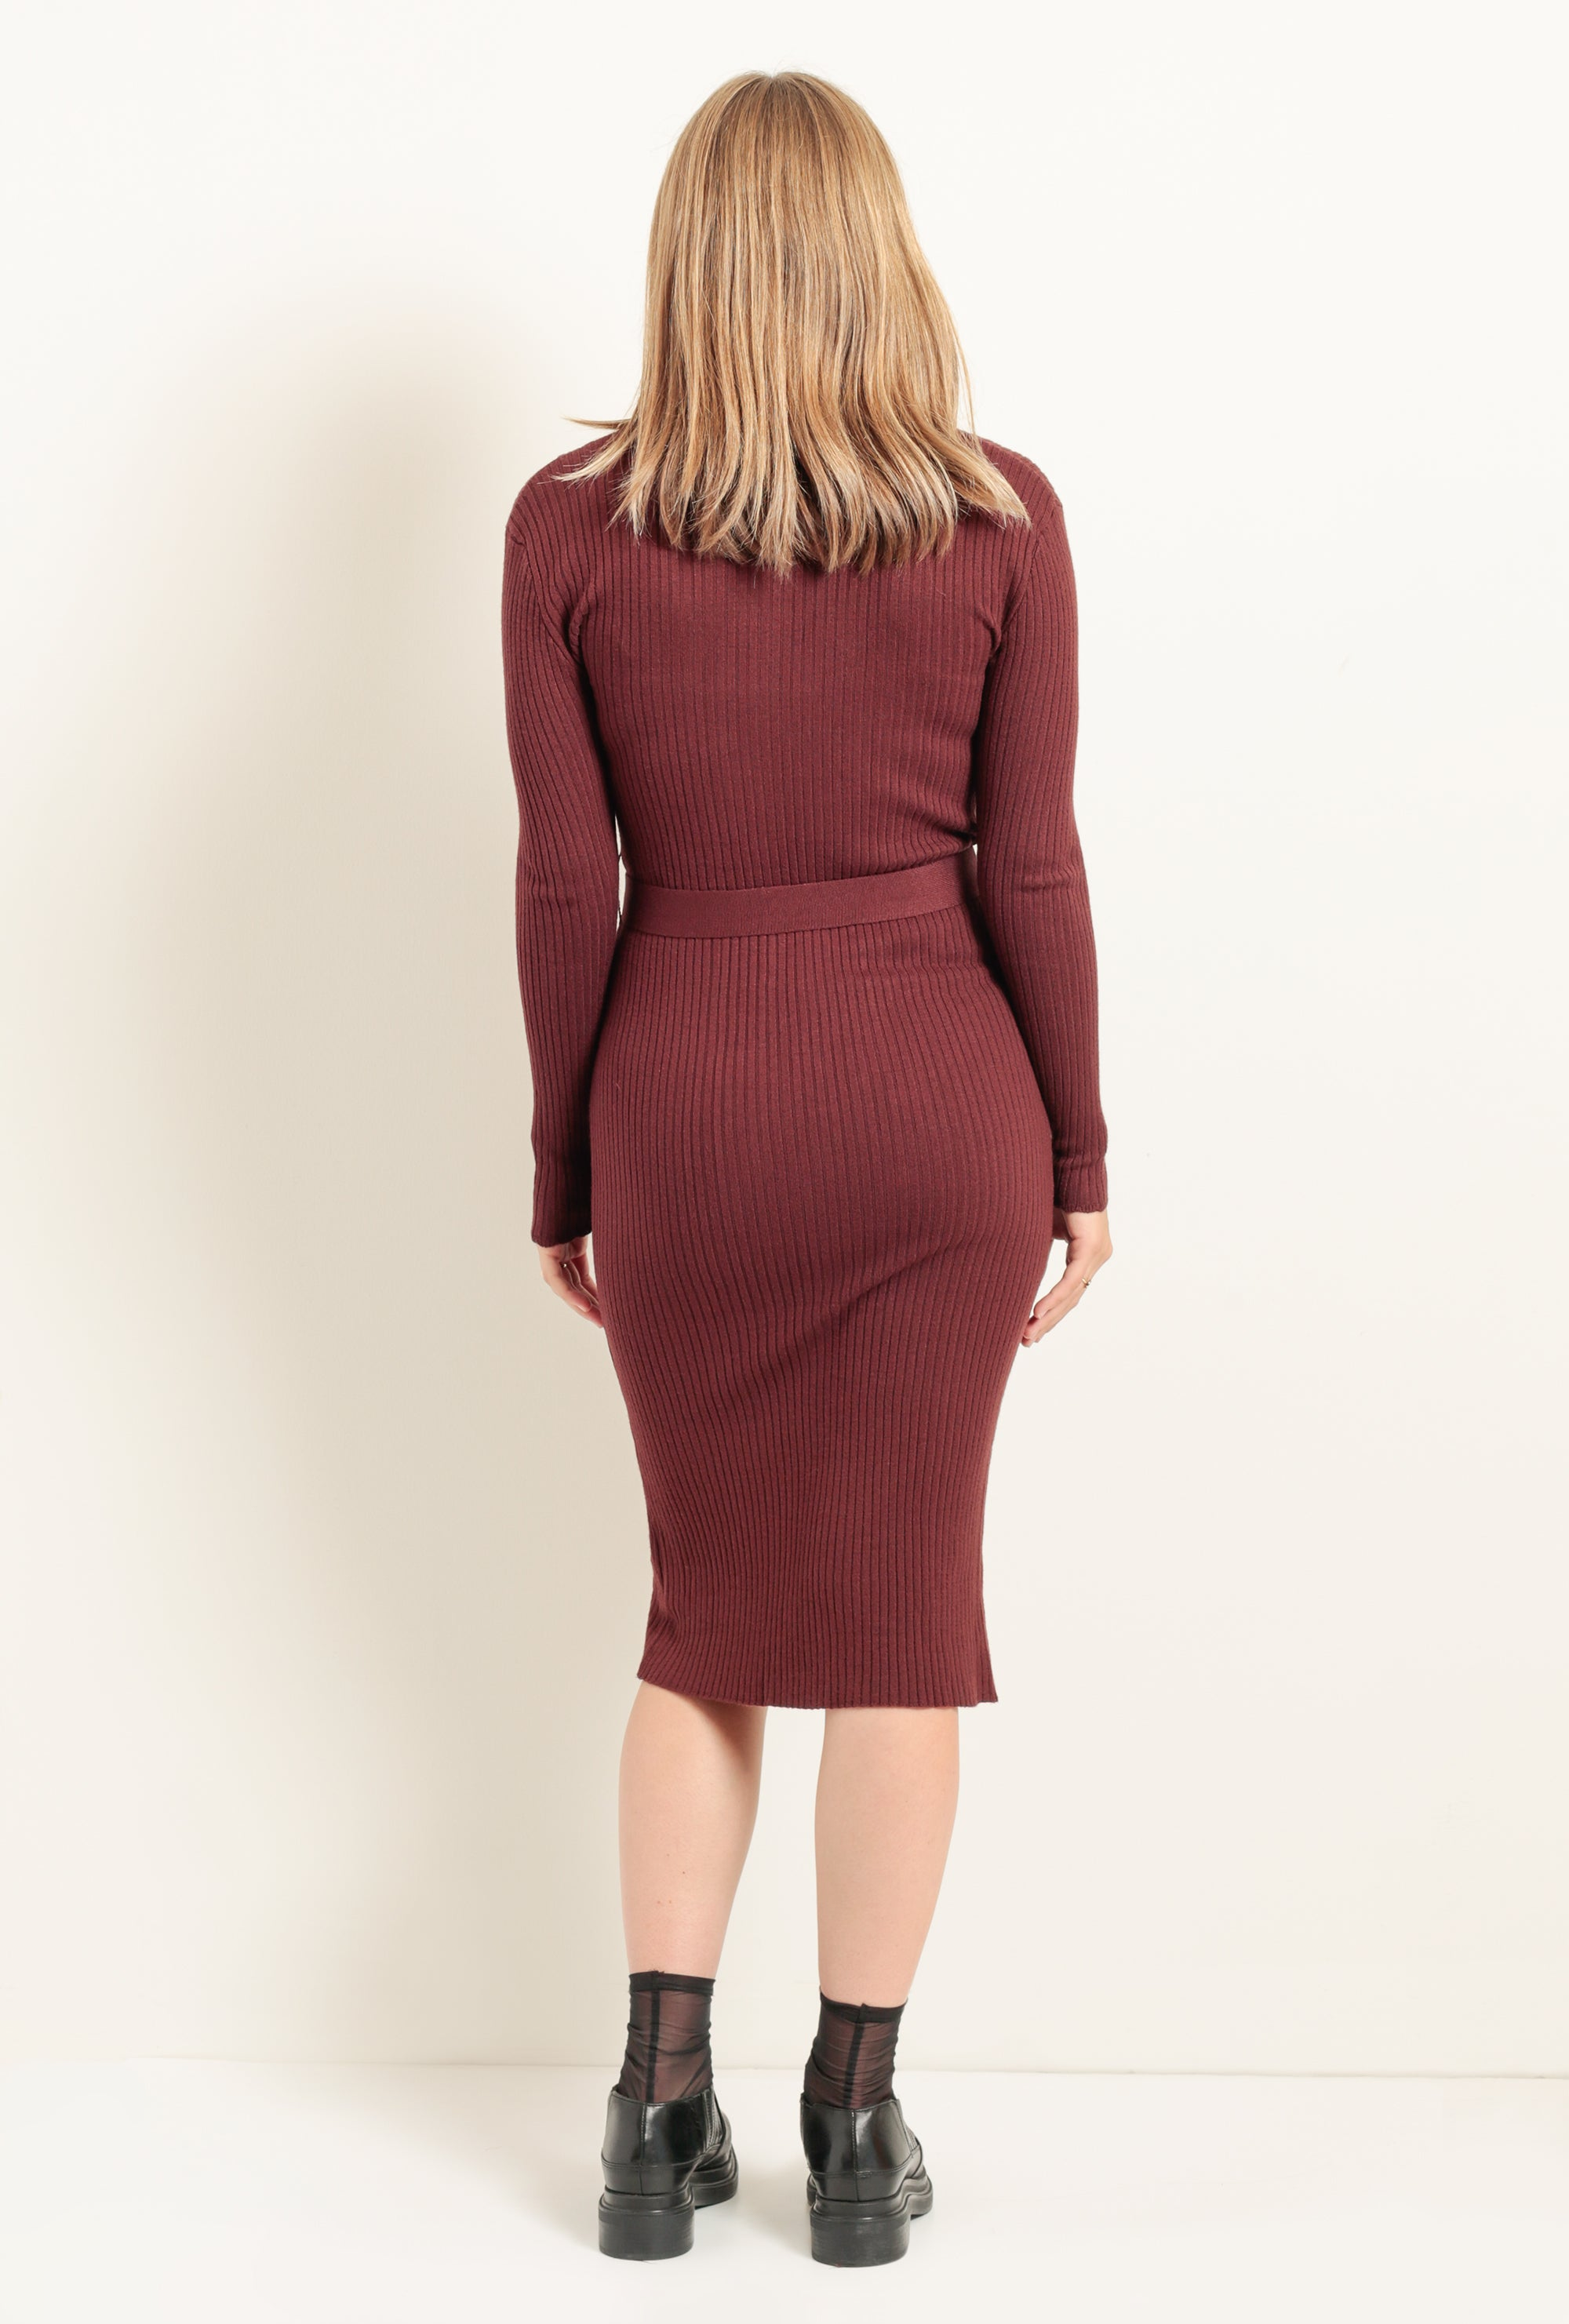 Corinth Sweater Dress